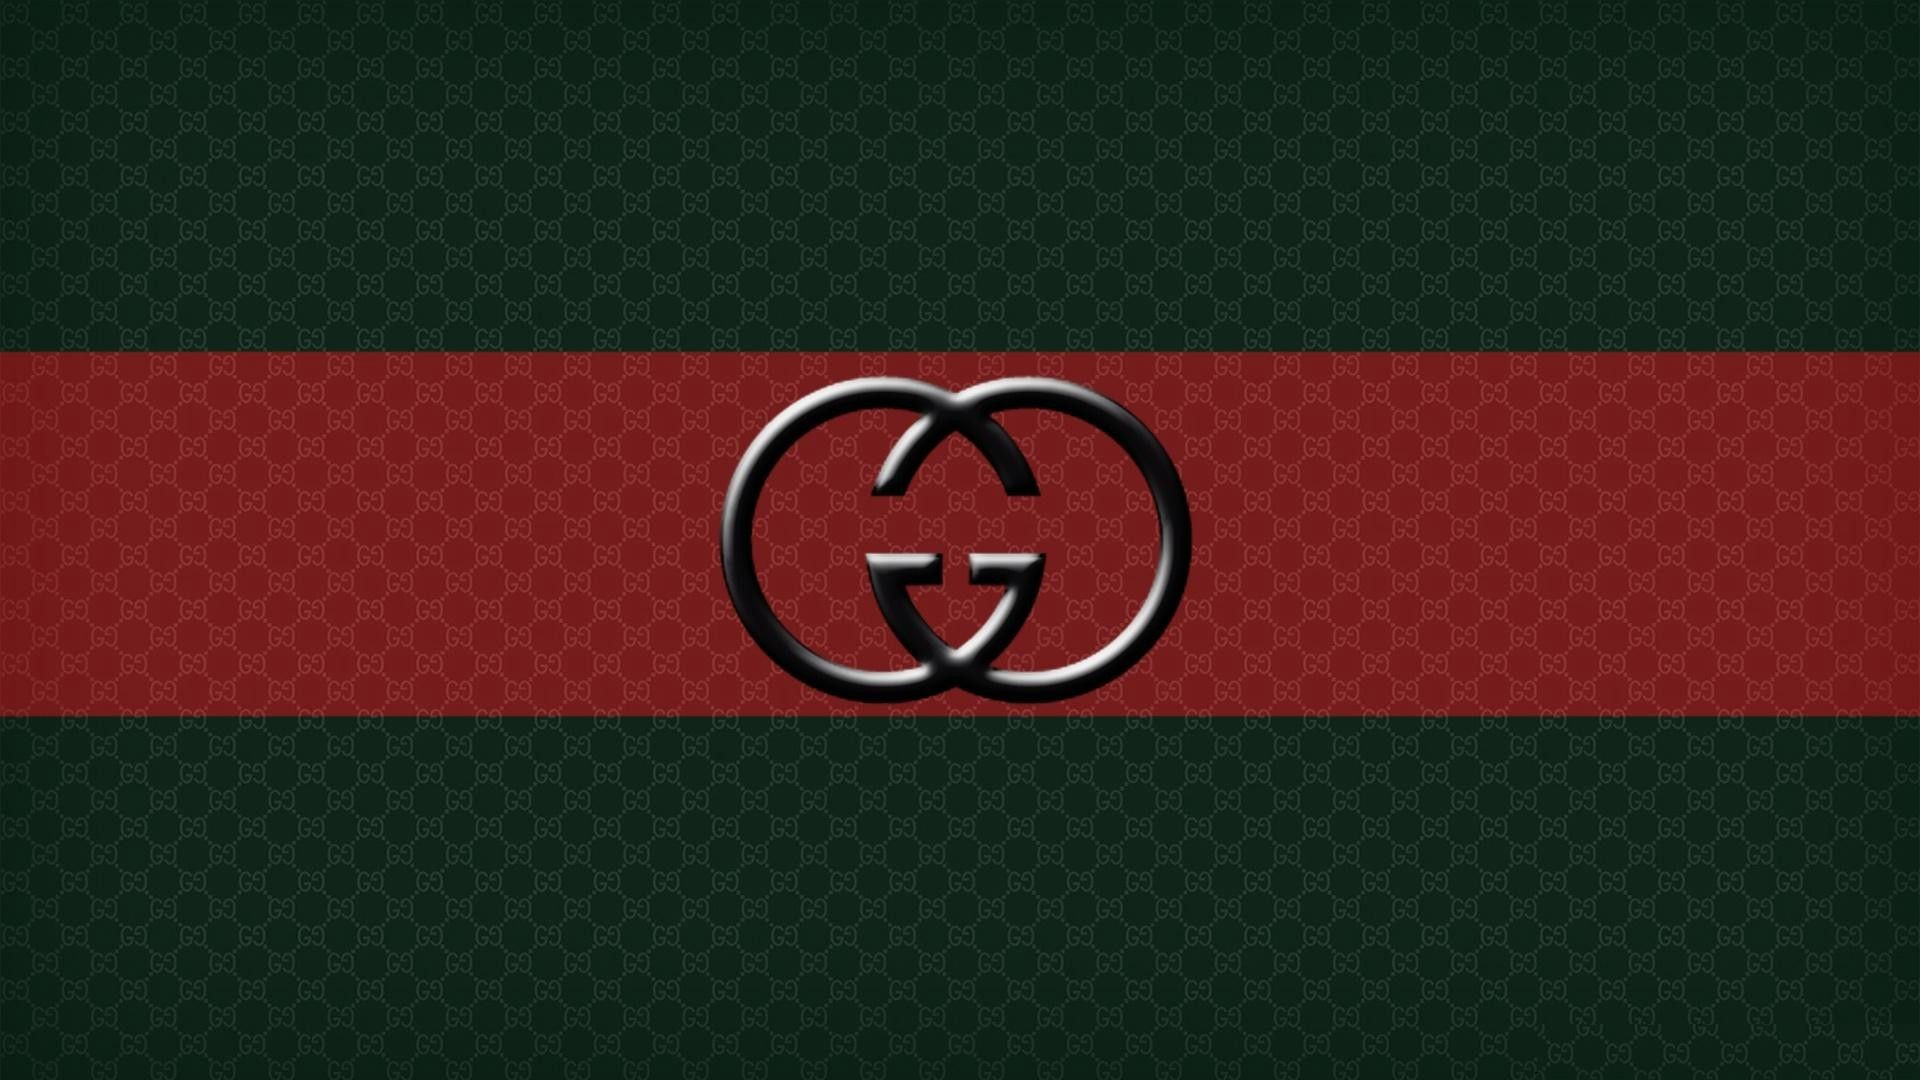 1920x1080 Pictures Images Gucci Logo Wallpapers Hd In 2019